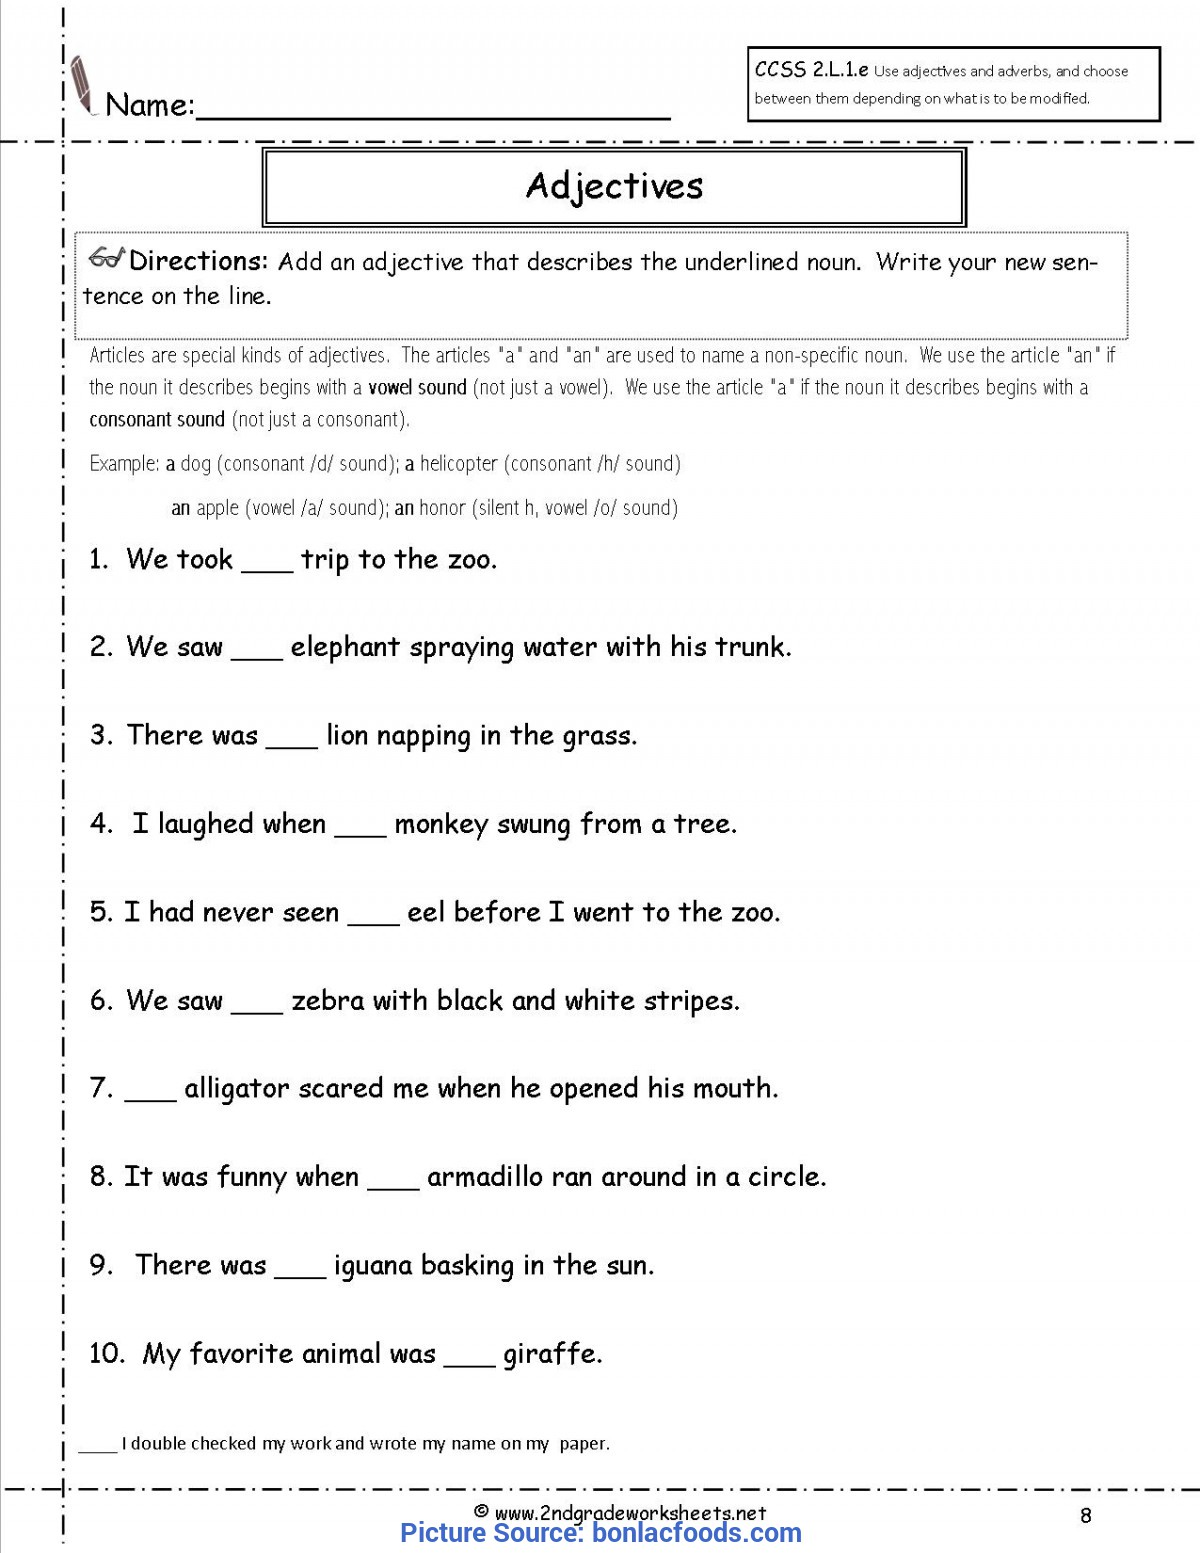 Valuable 2nd Grade Lesson Plans Adjectives Worksheets For